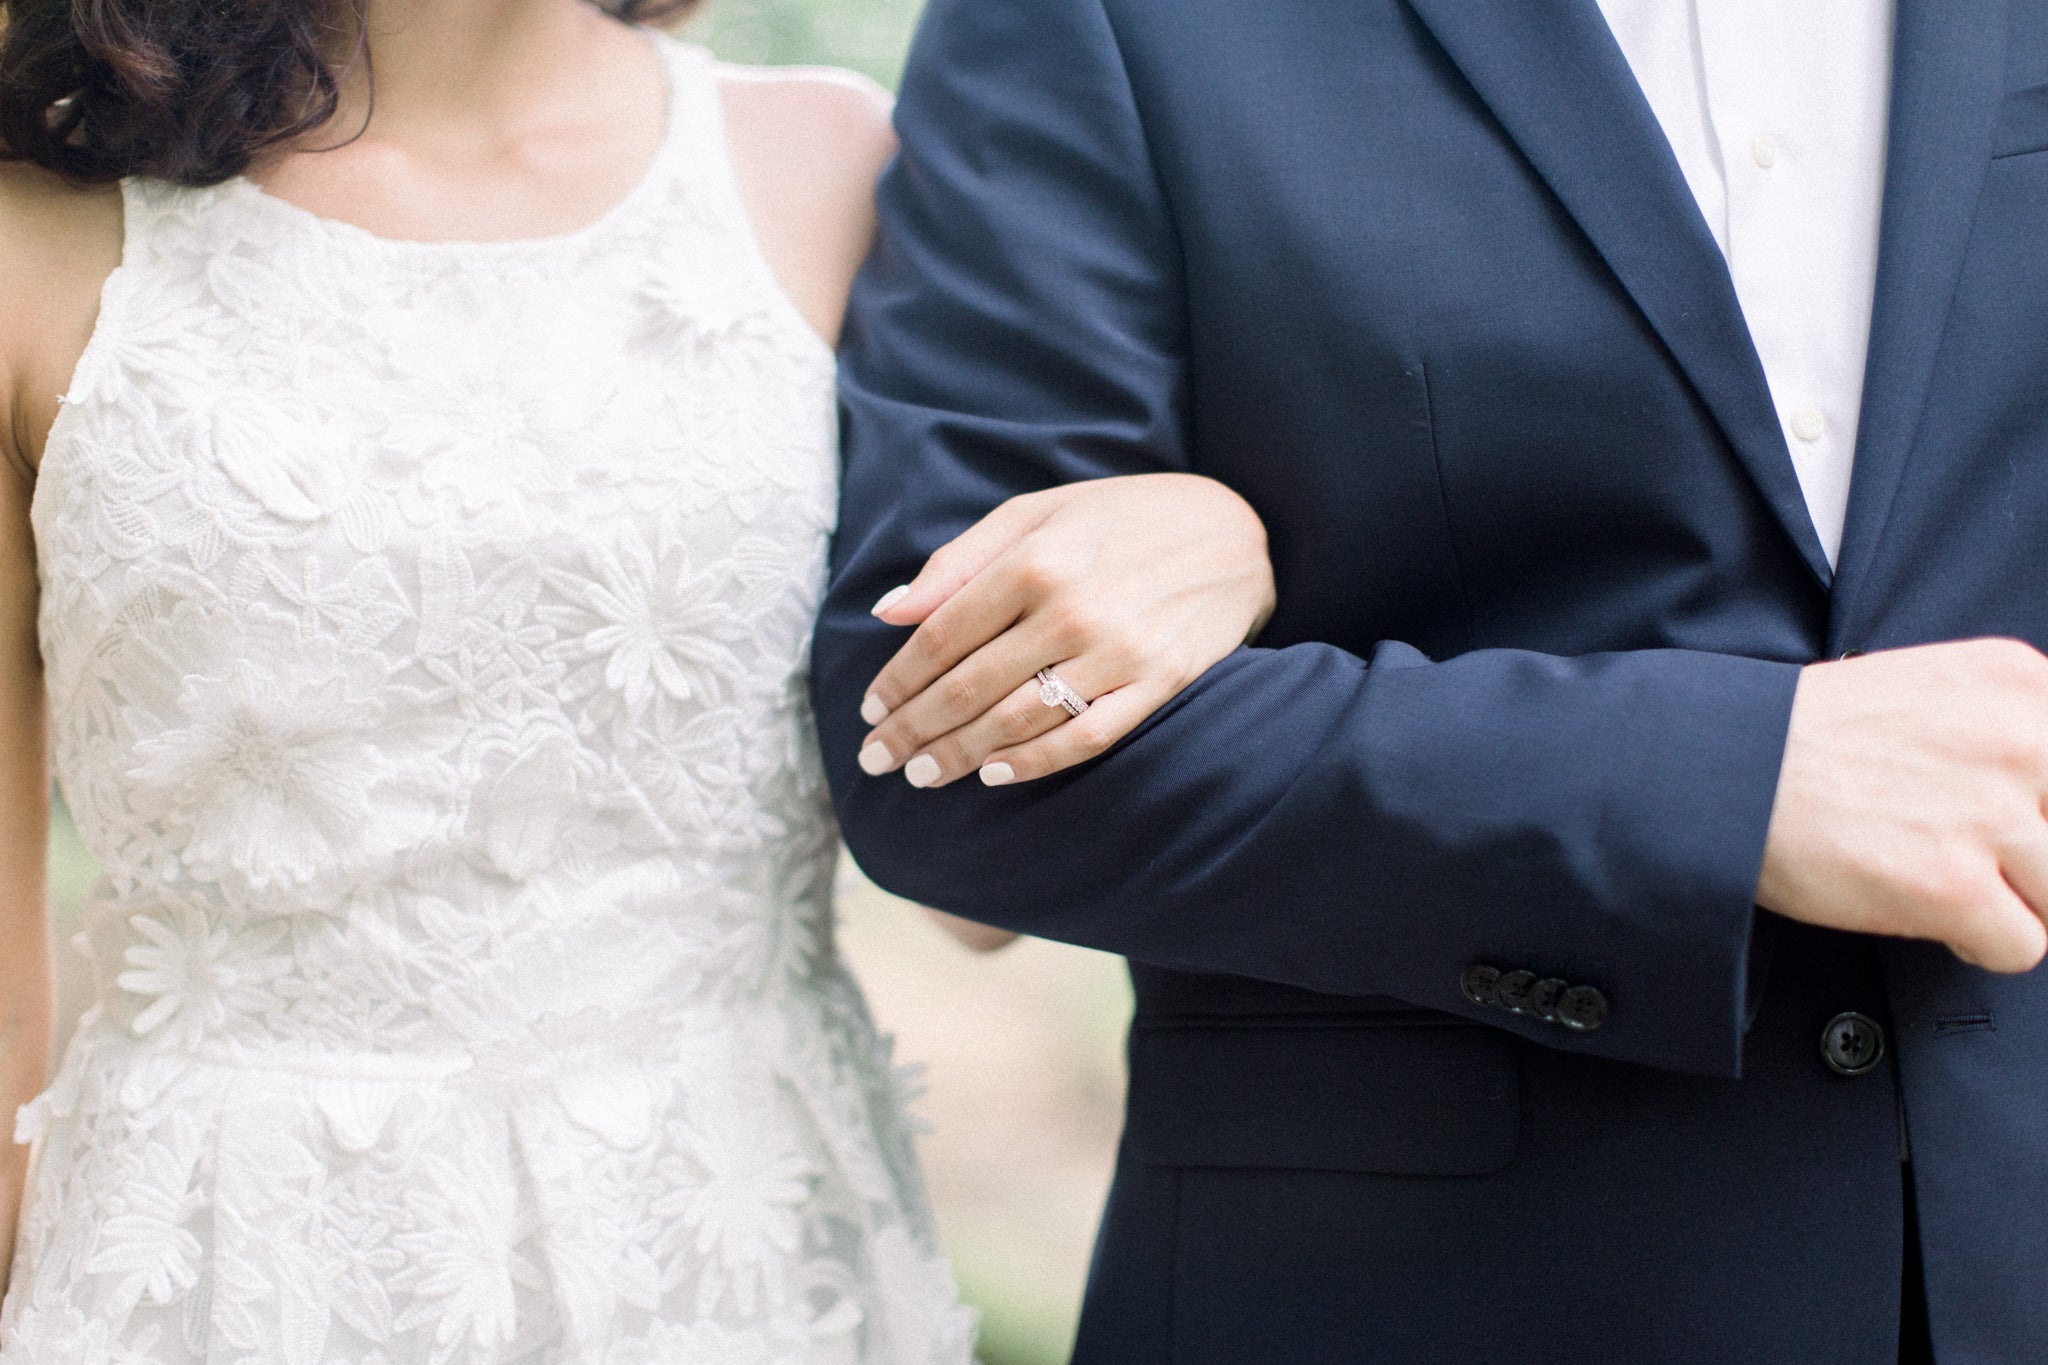 bride to be in little white dress locking arms with her fiancé featuring her engagement ring